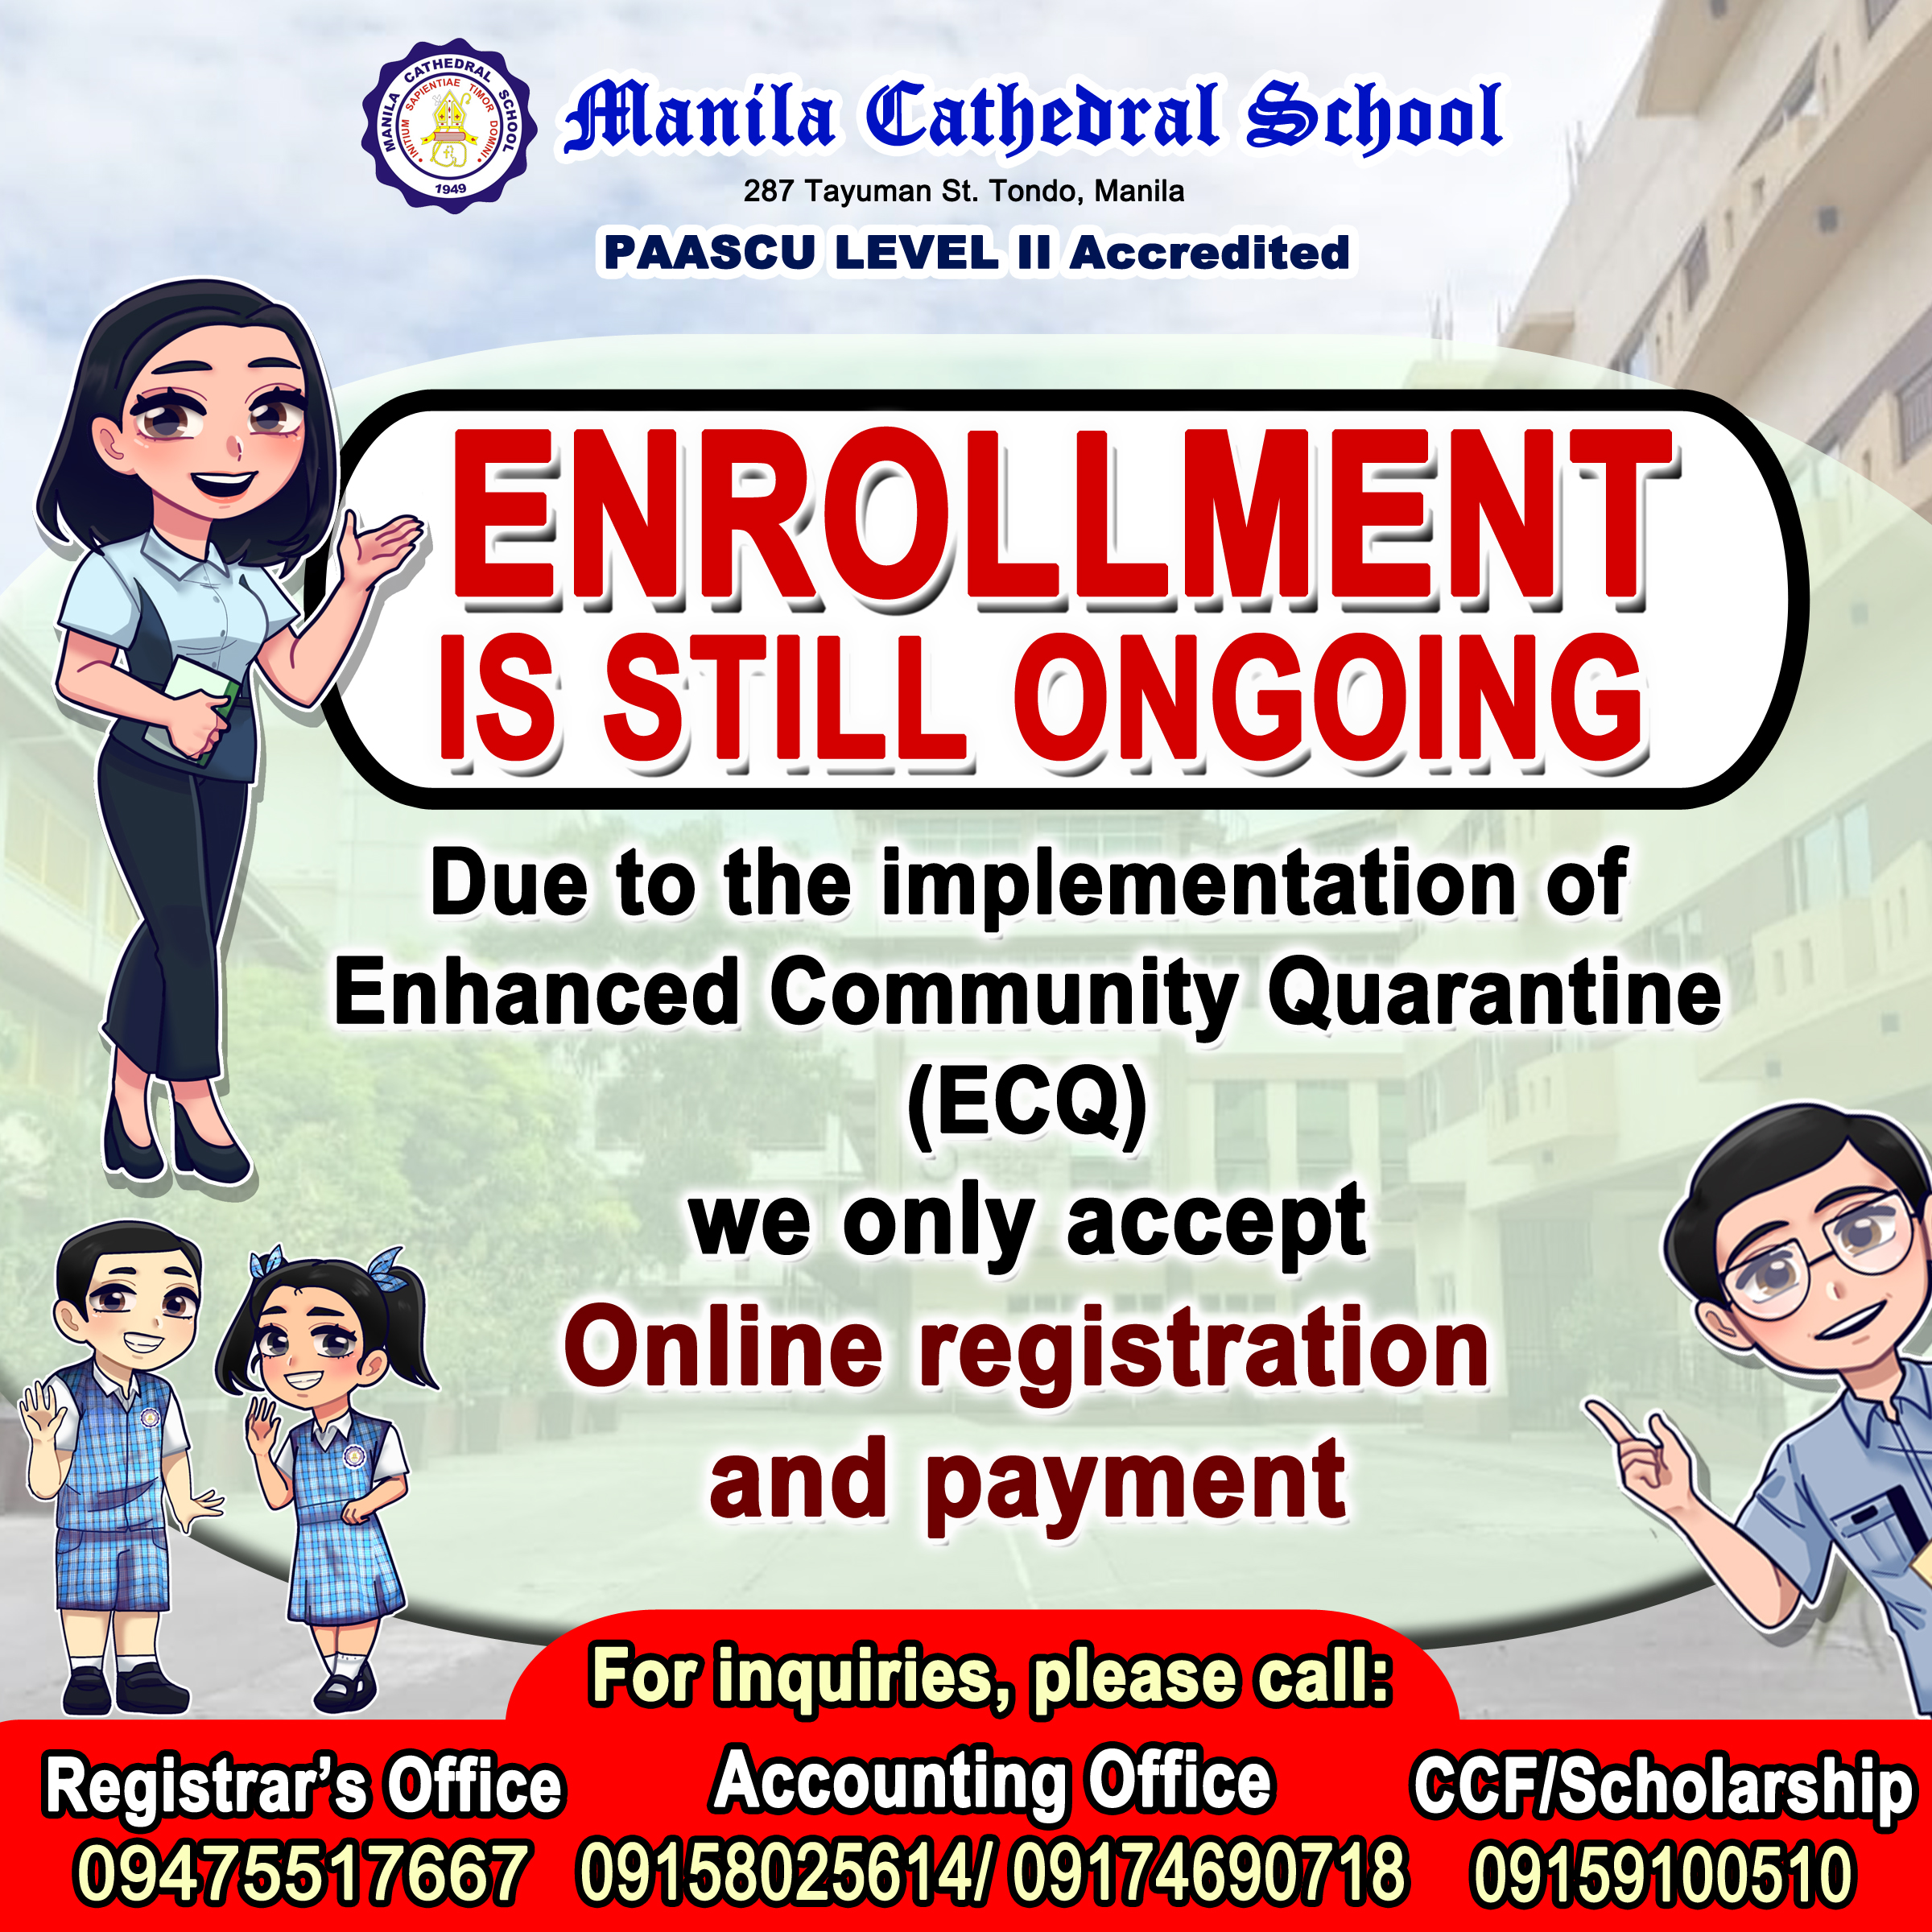 Enrollment is still ongoing! Due to the implementation ECQ we only accept online registration and payment.